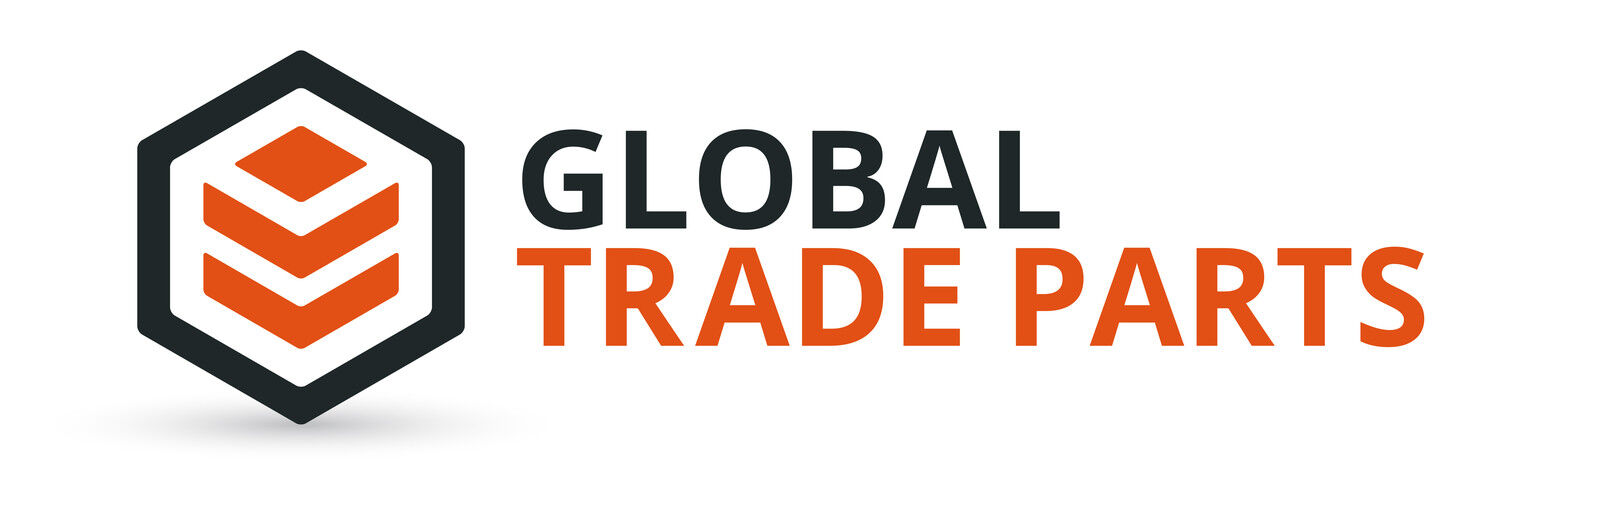 Global Trade Parts